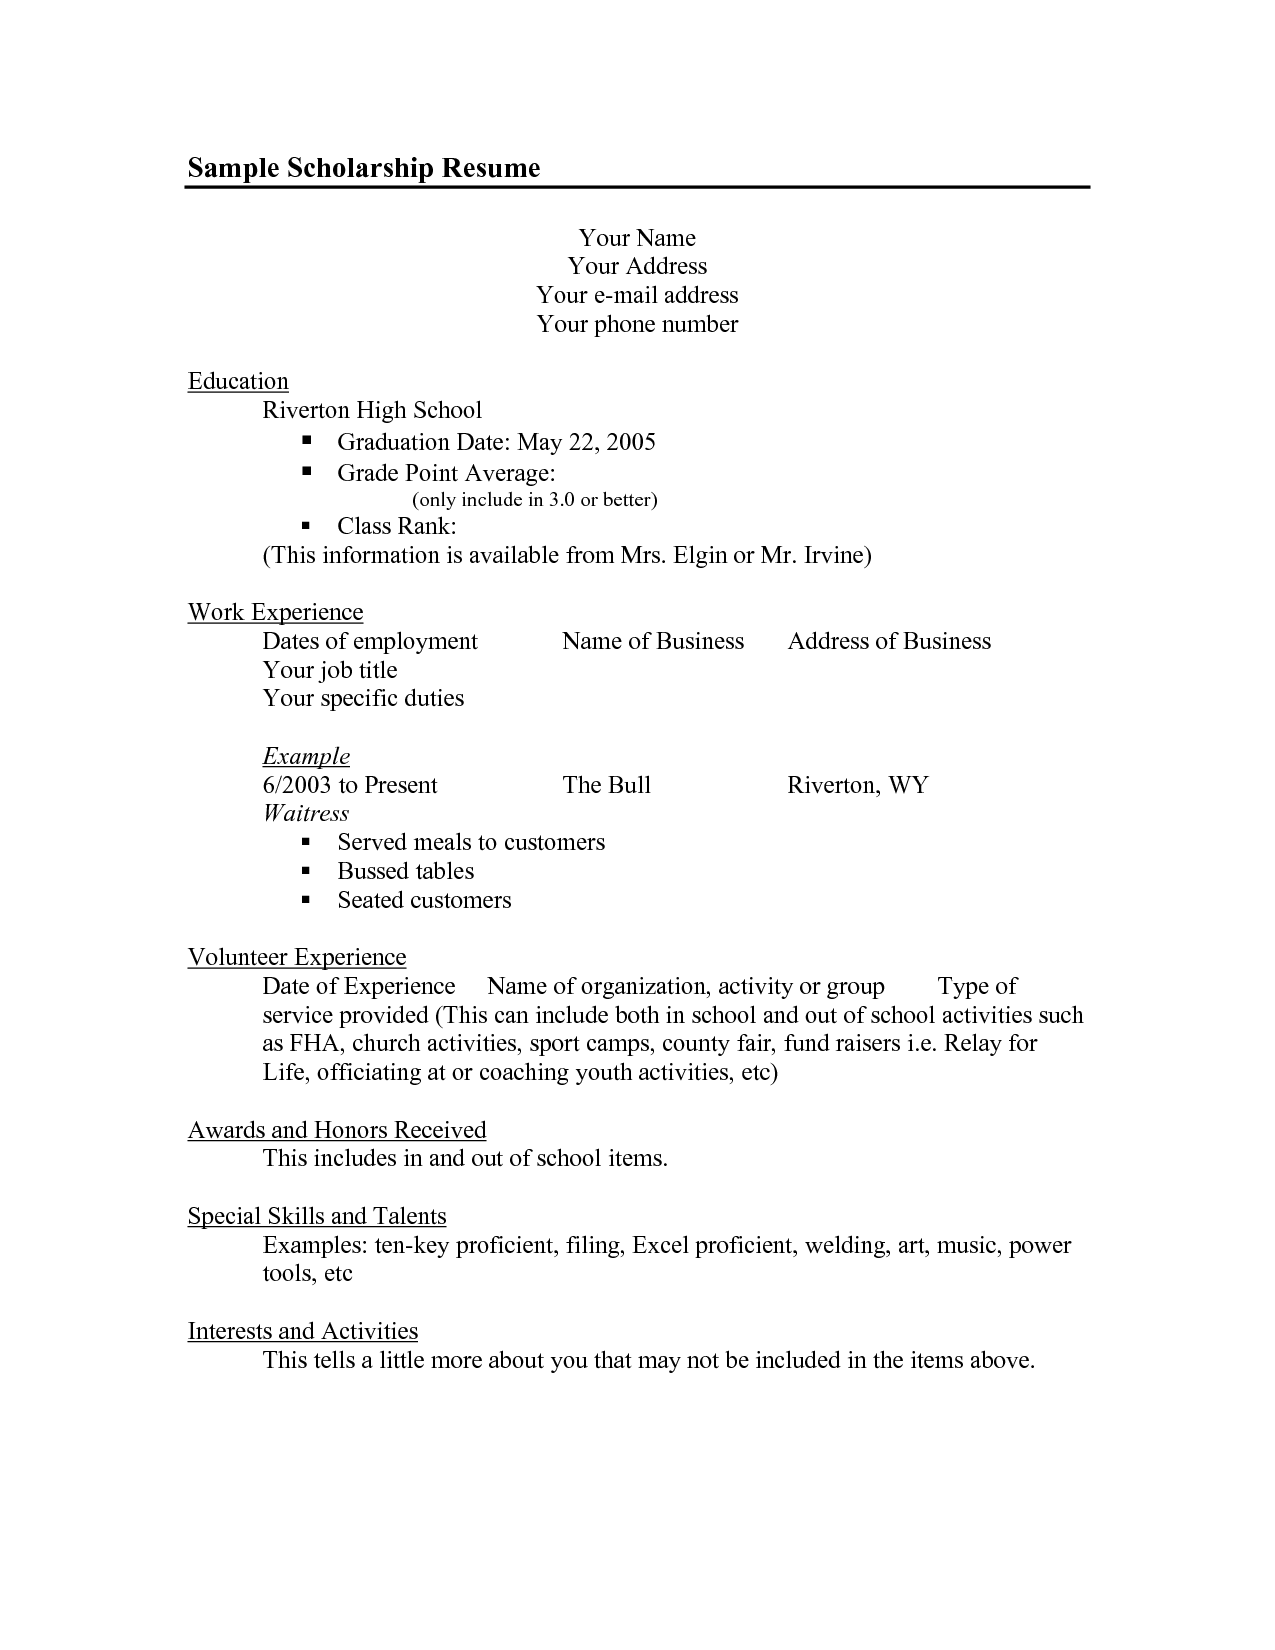 College Resume Template Unique Scholarship Resume Templates  Sample Scholarship Resume Graduation